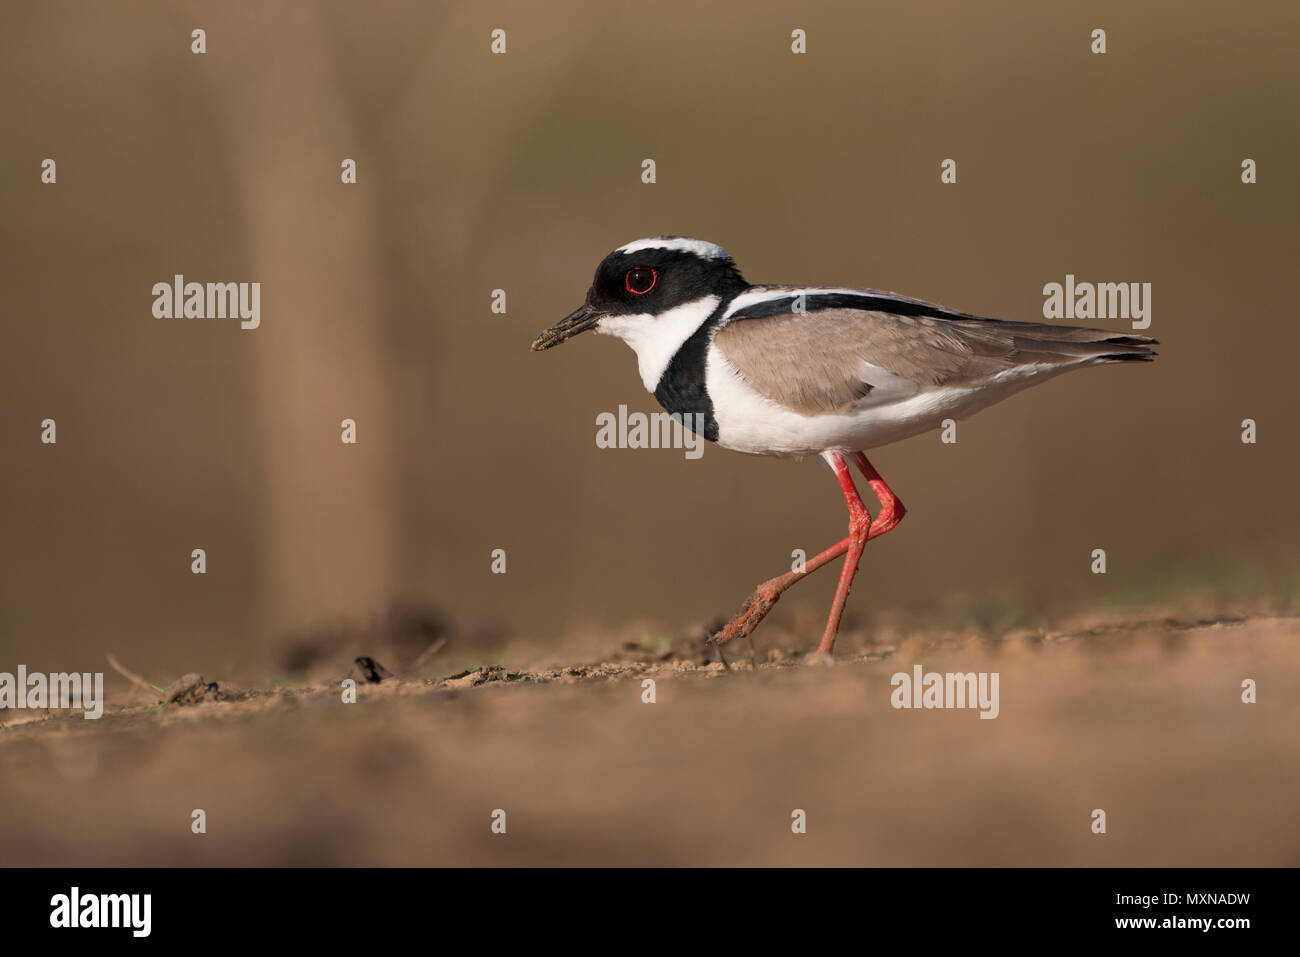 A Pied Plover (Vanellus cayanus) from the Pantana of Brazil - Stock Image